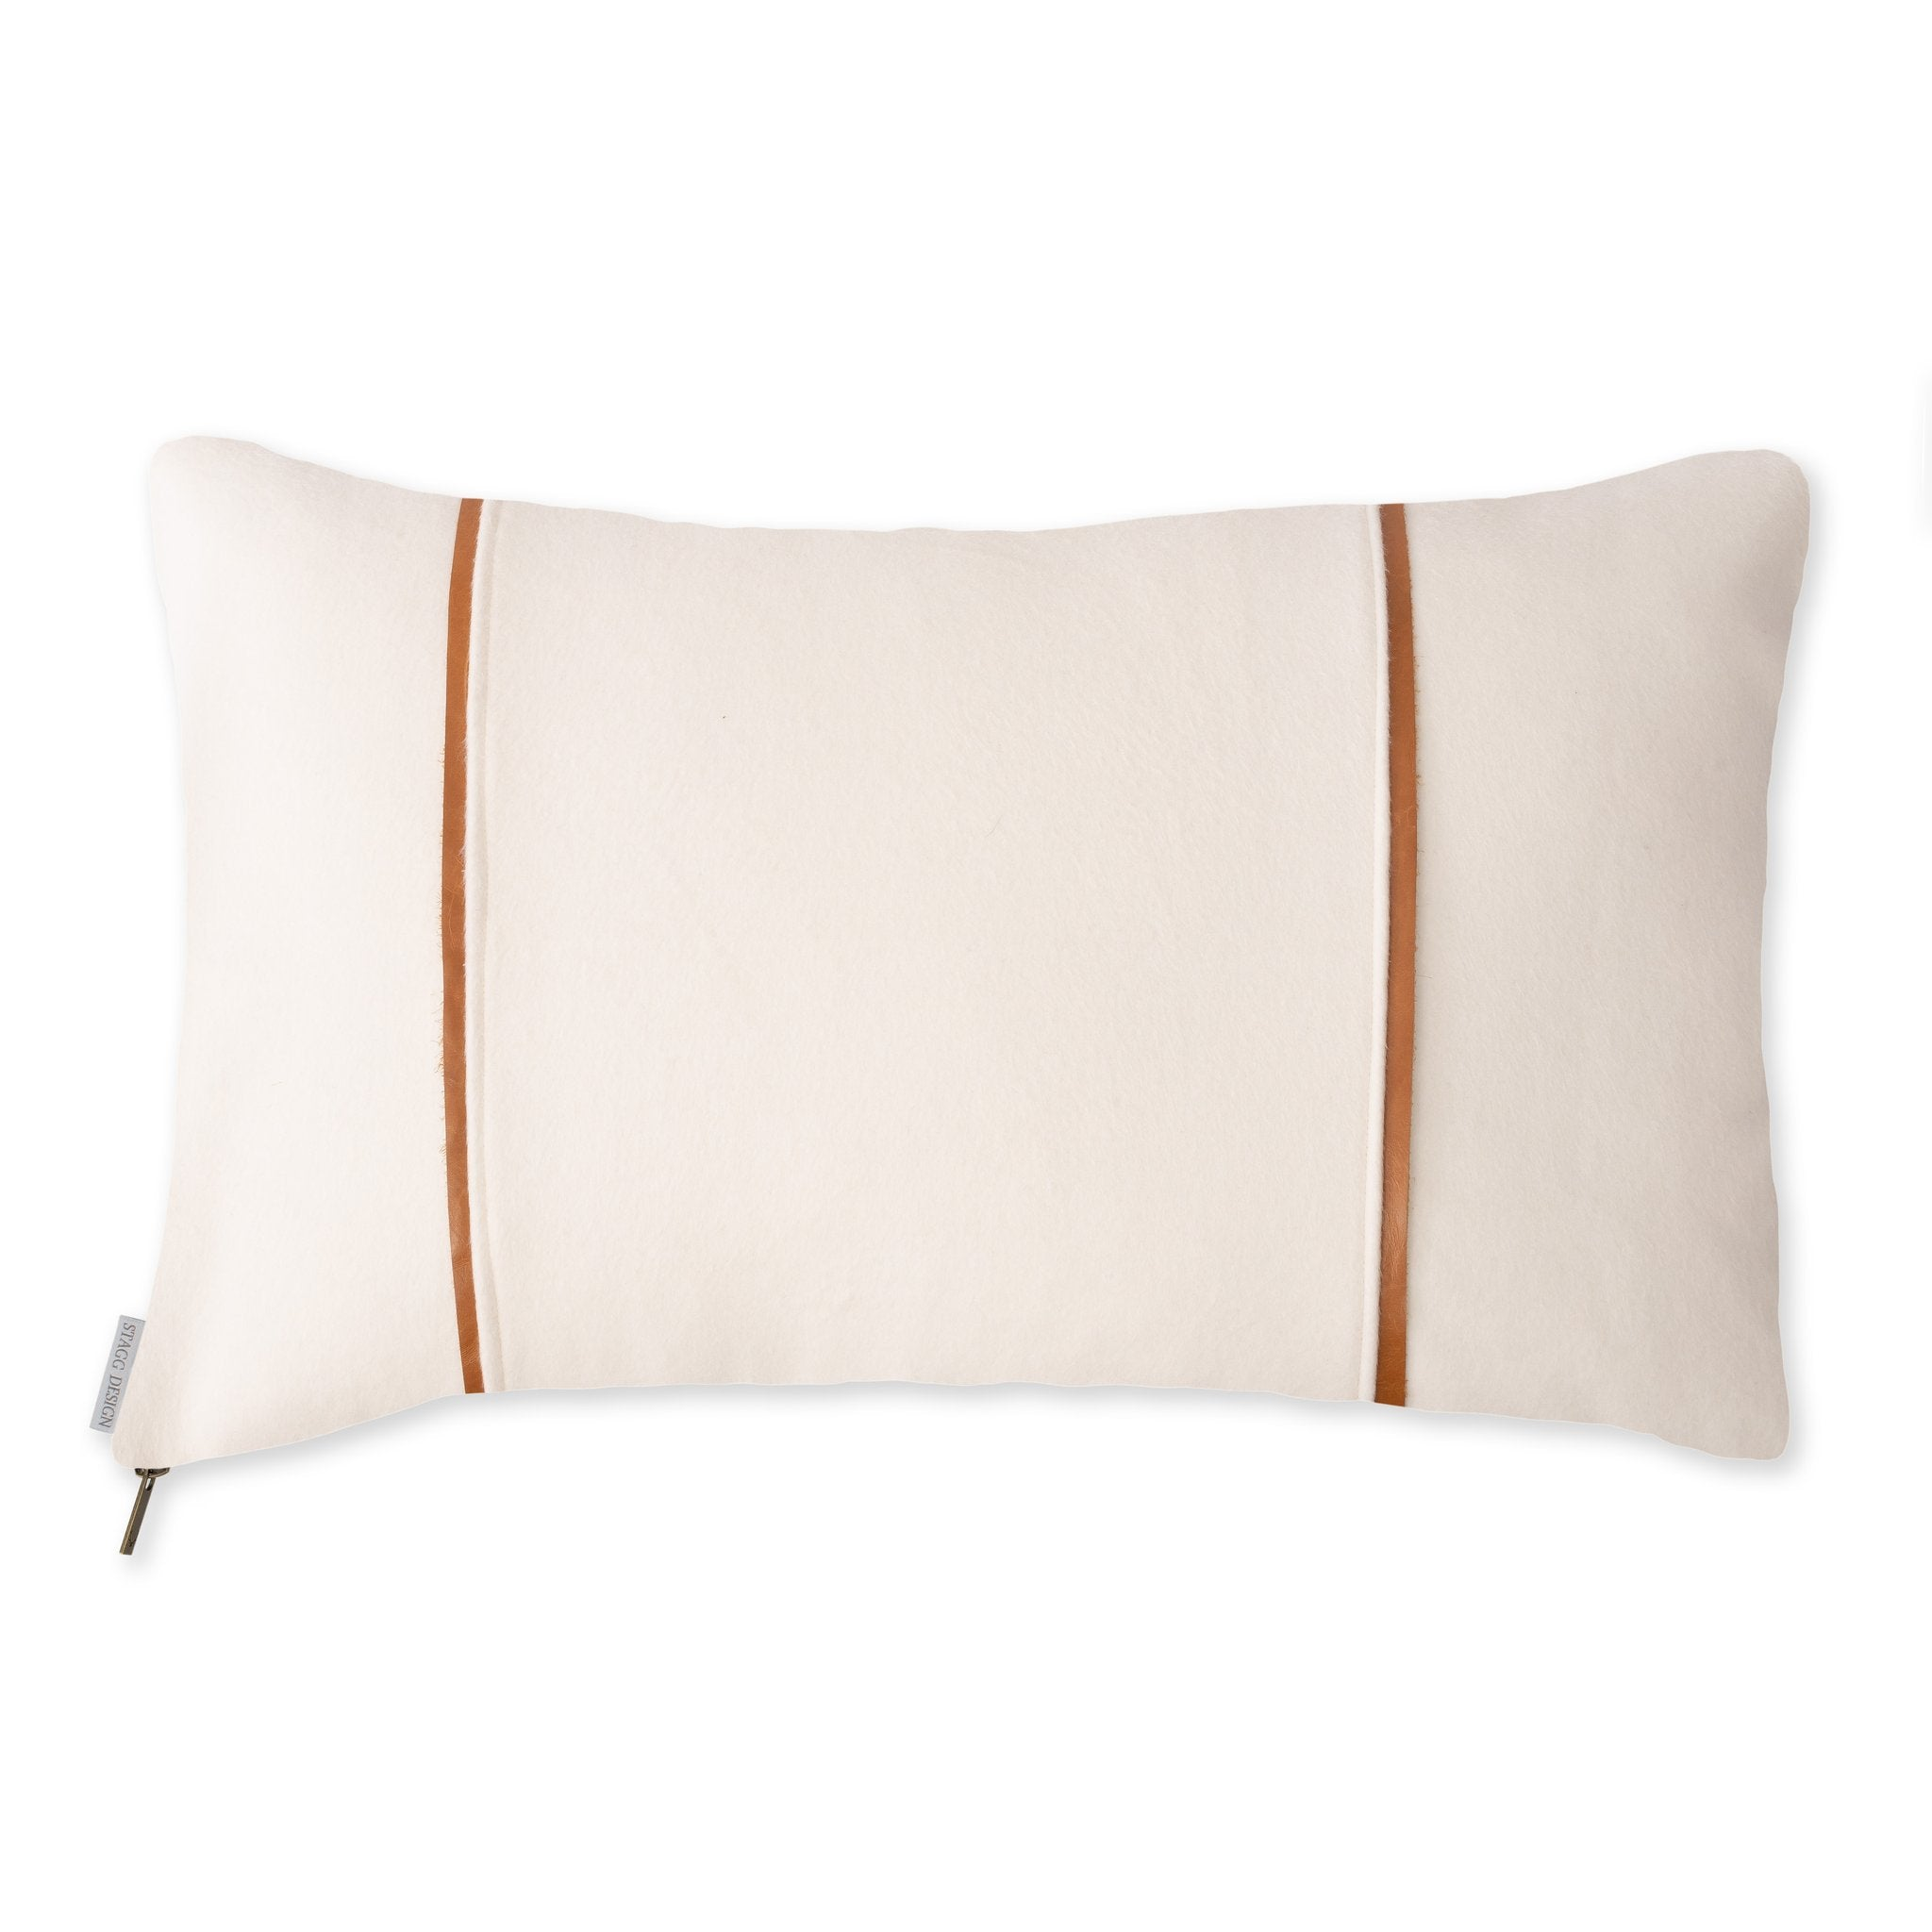 Winter Spruce Pillow Pairing (Set of 3)